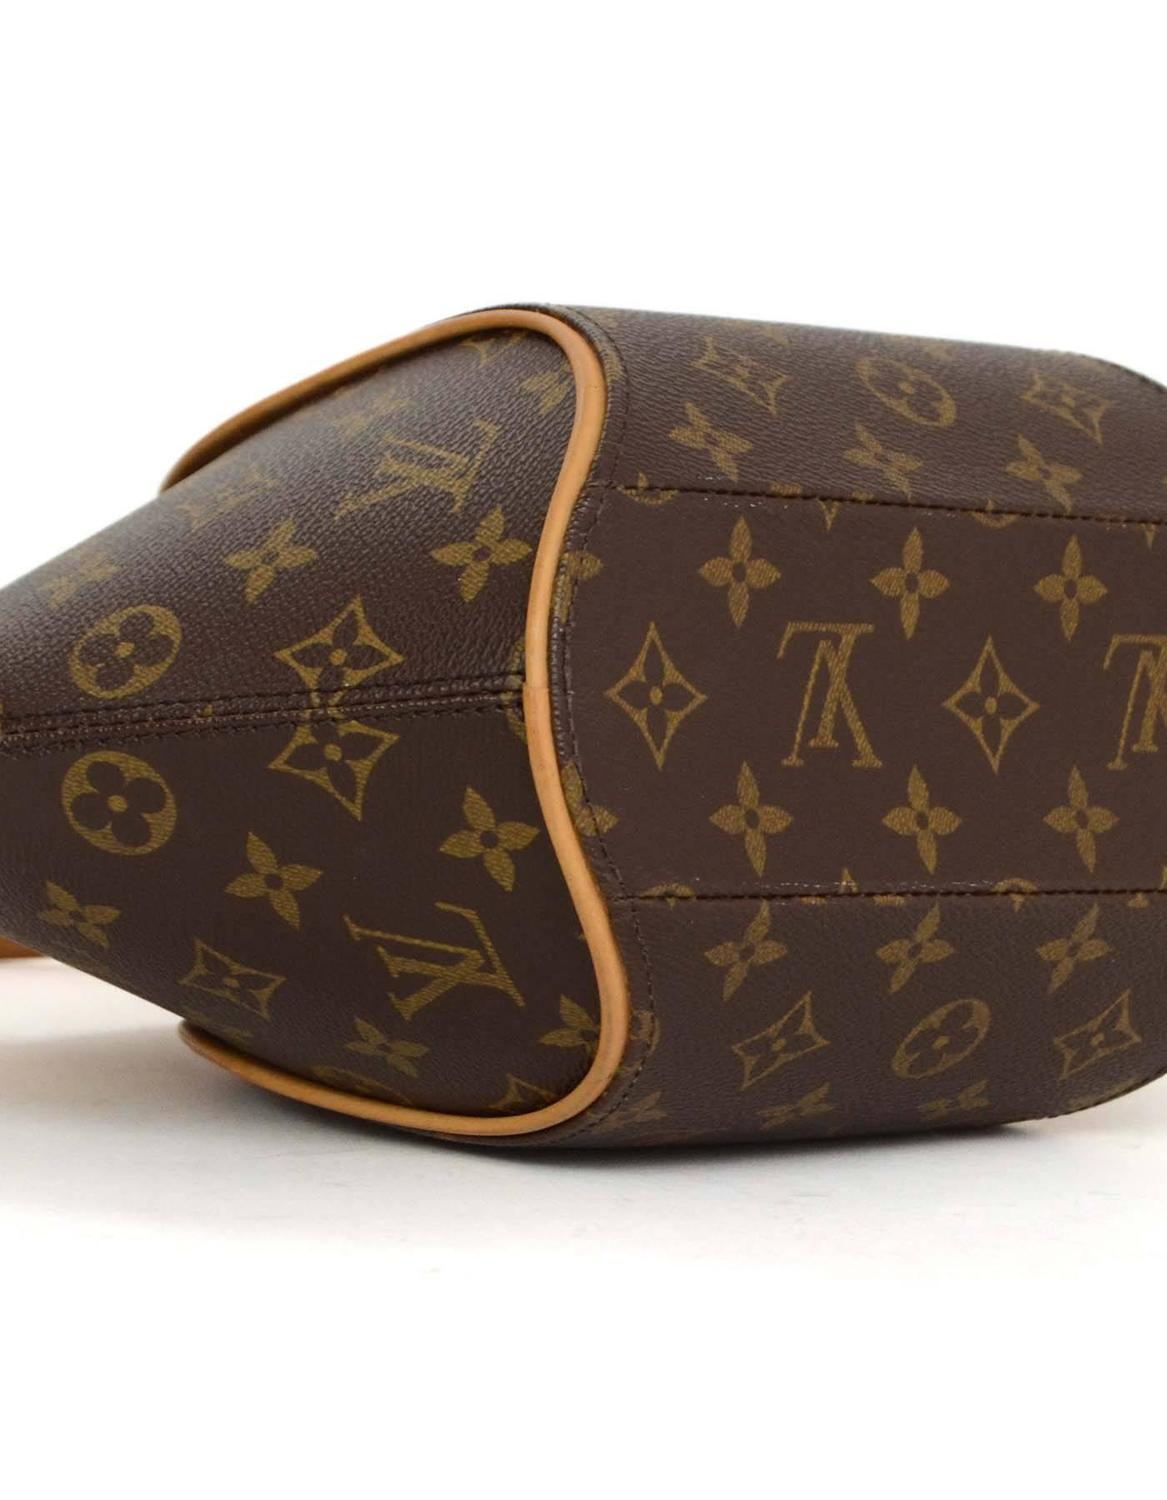 Home Designer Interiors Serial Louis Vuitton Monogram Ellipse Pm Bag Ghw For Sale At 1stdibs